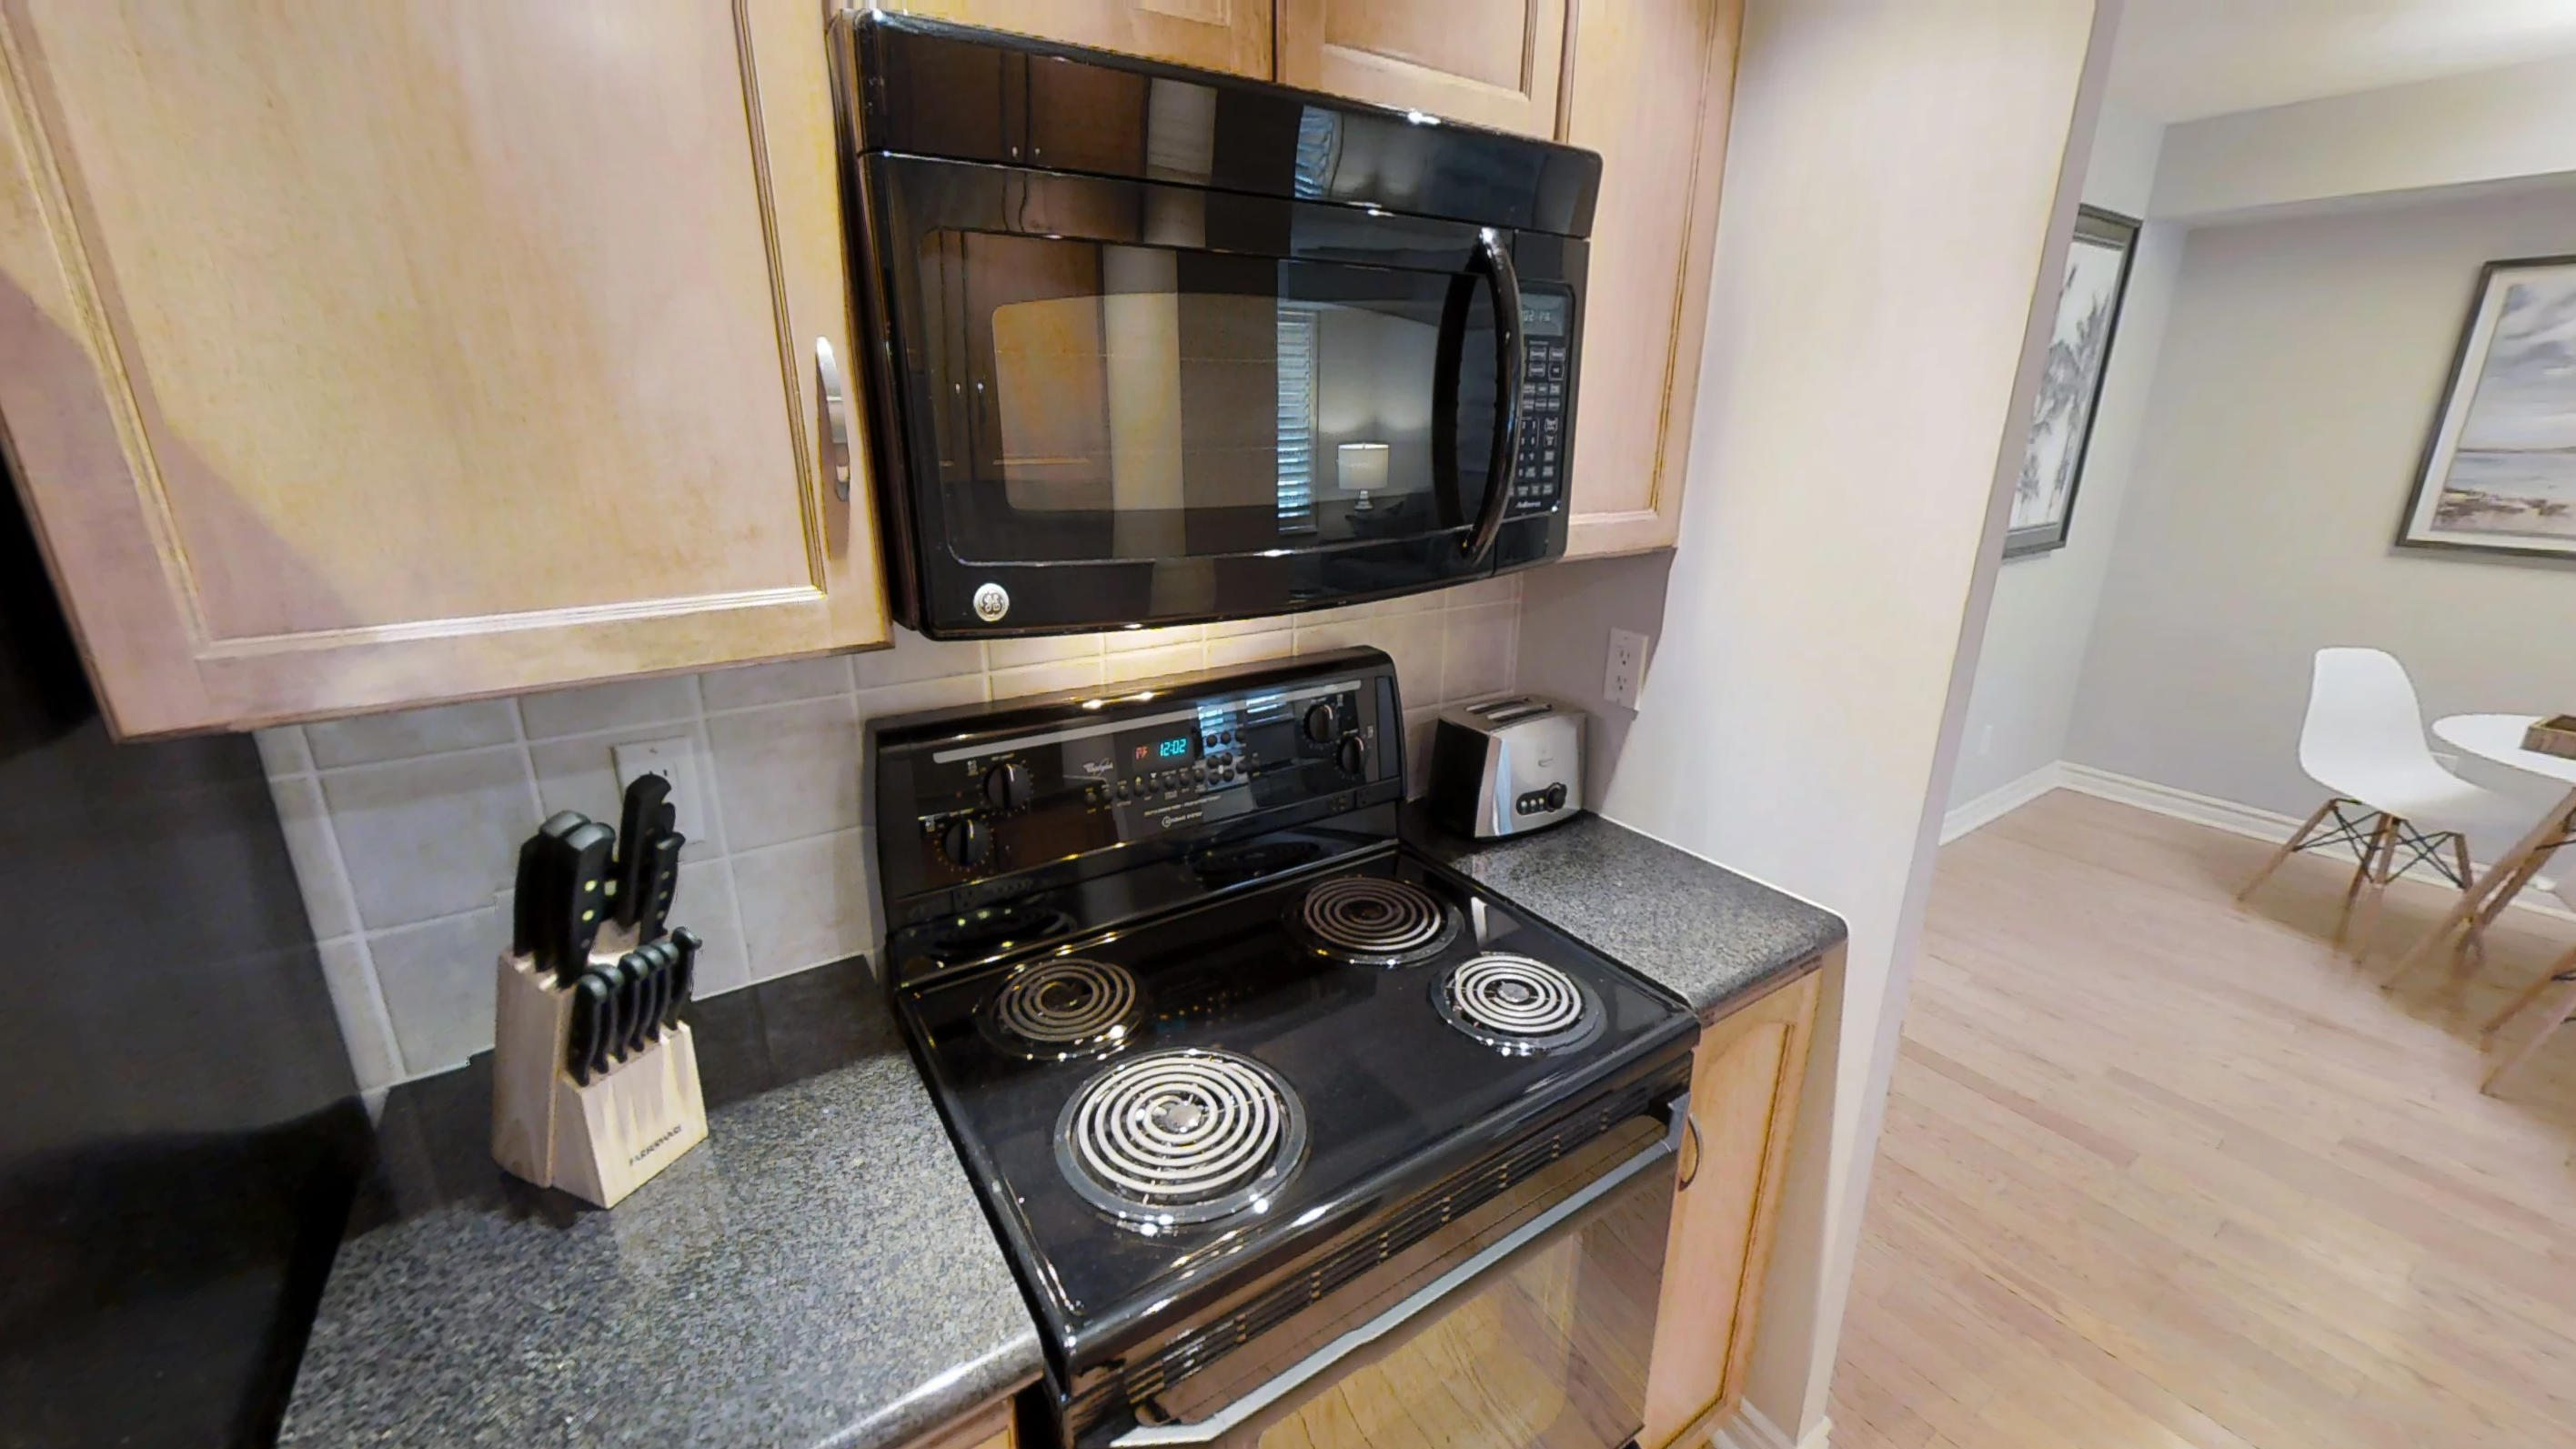 the oven and microwave in a furnished apartment in downtown Toronto, near Wellington and John